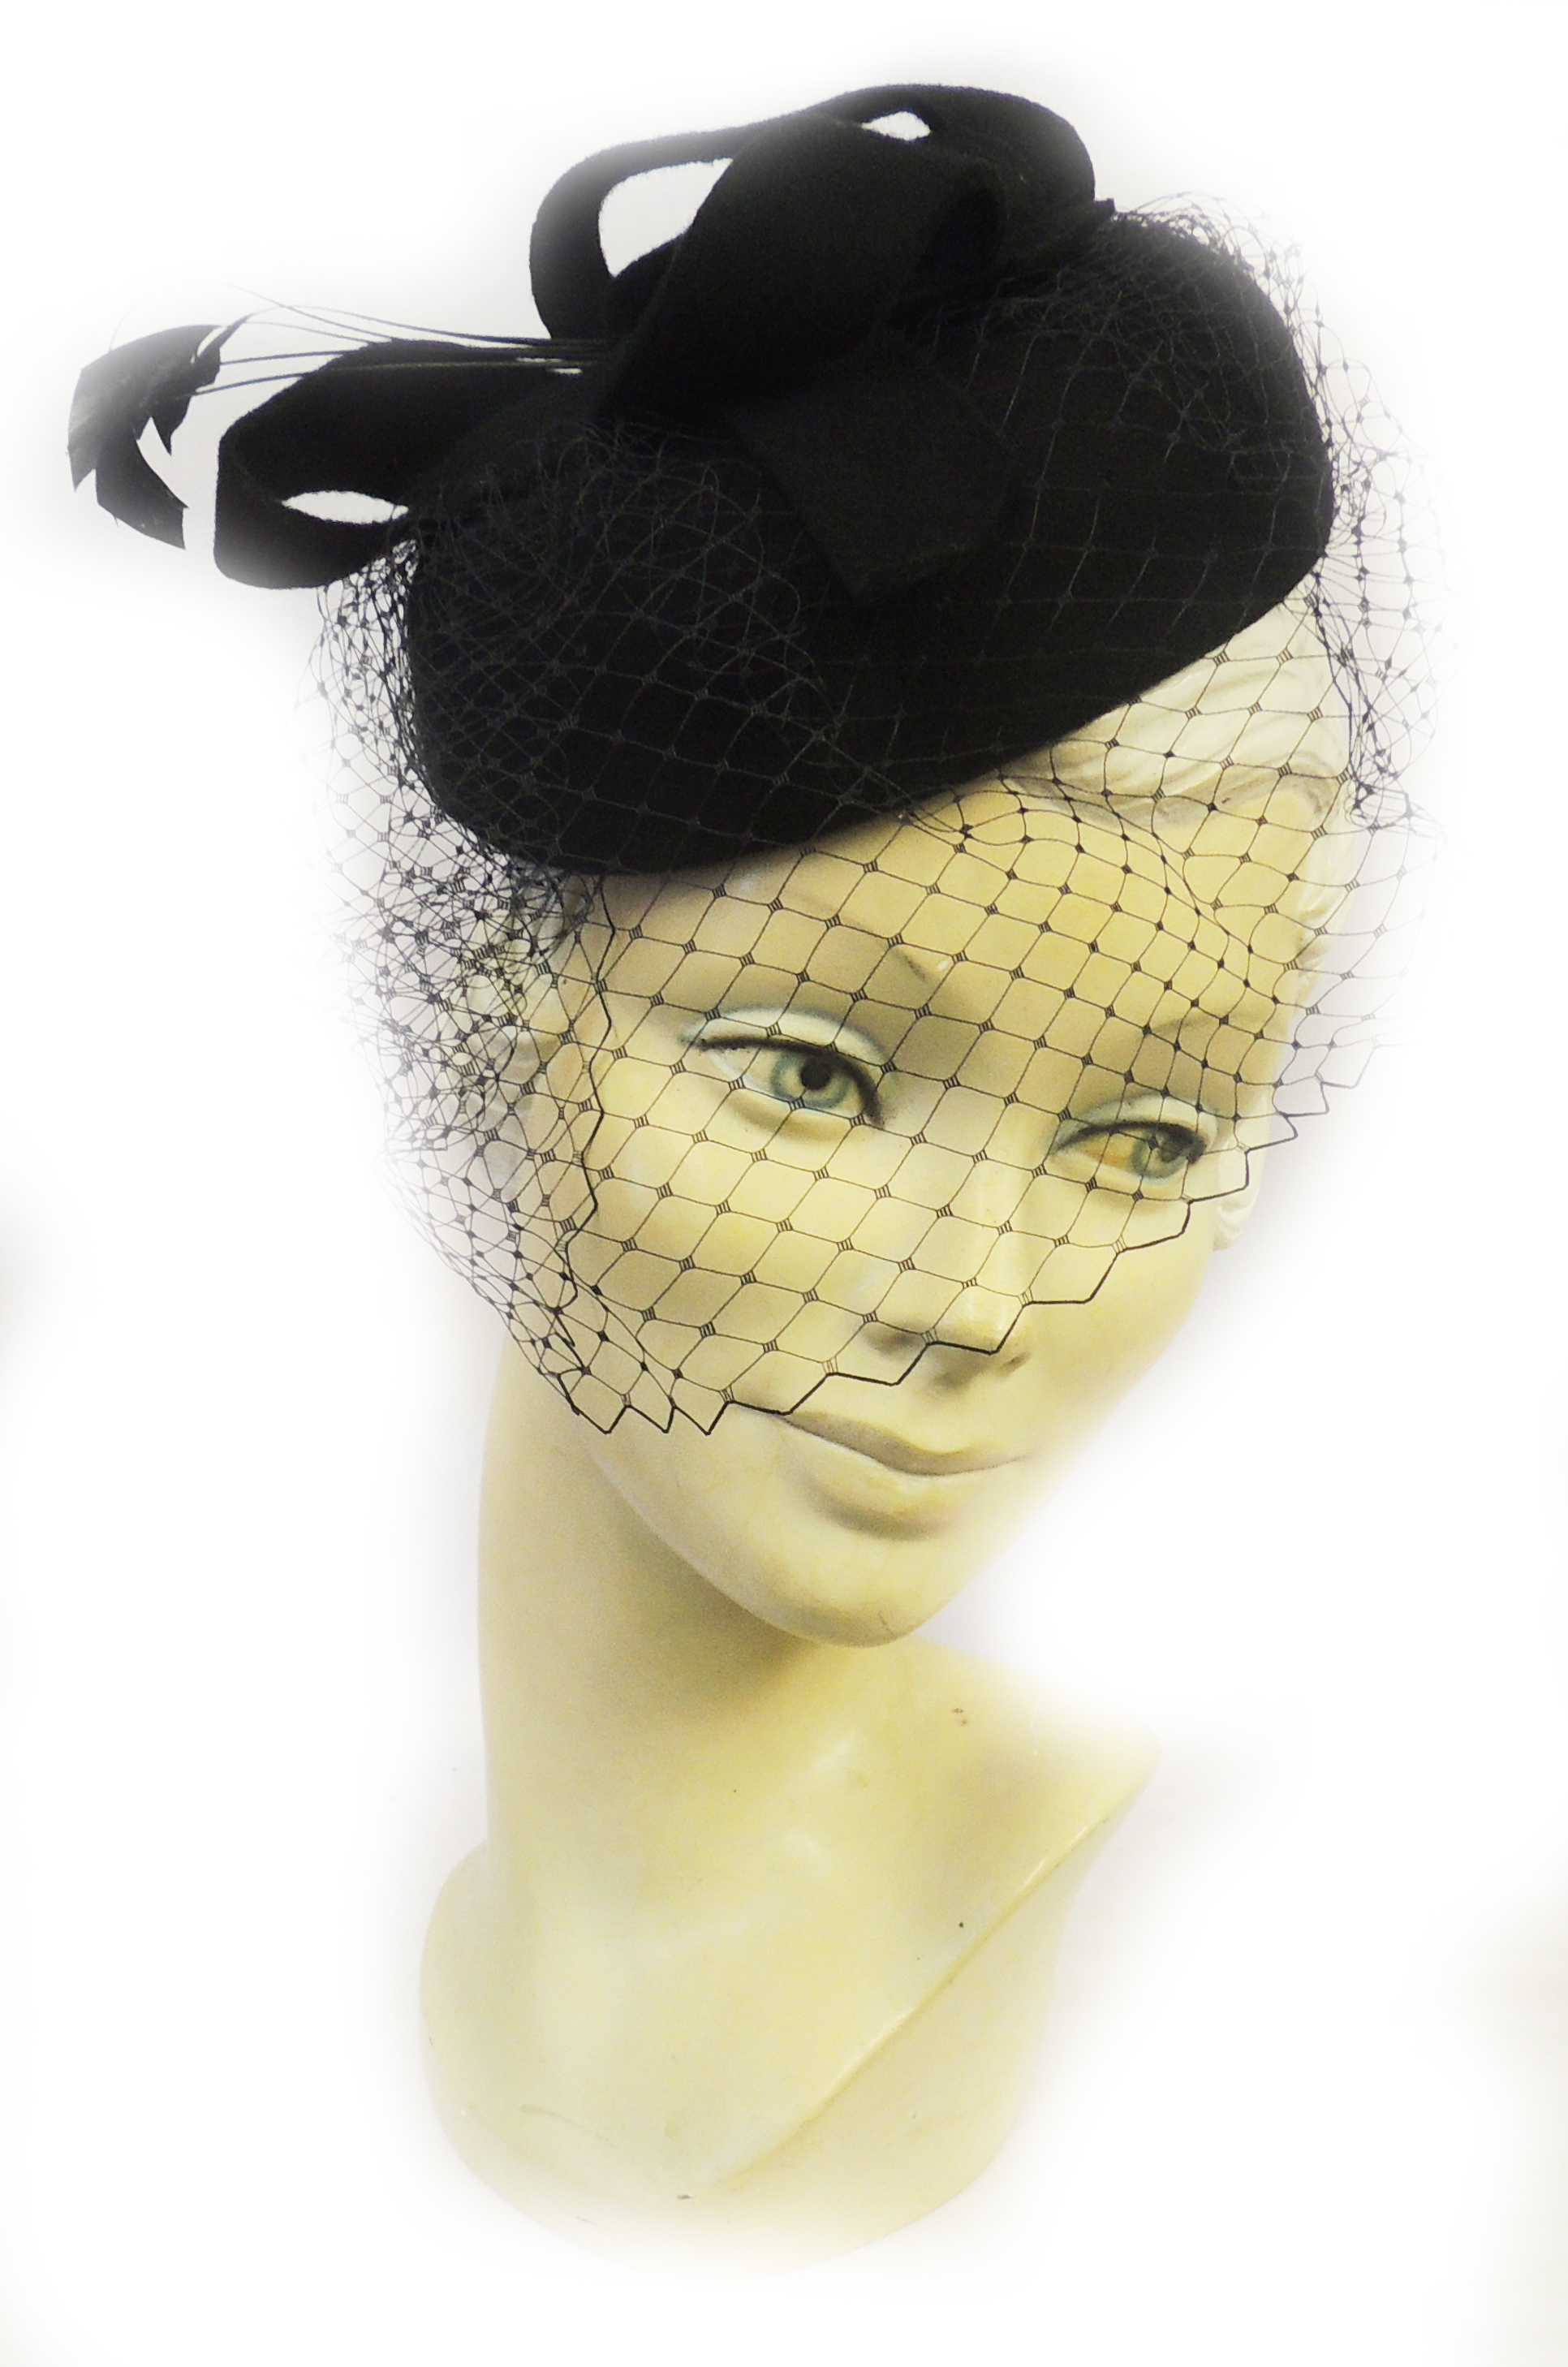 1950s Style Hats for Sale    New Ladies VTG 1940s 1950s Retro WW2 Wartime Pin-up Pill Box Hat with Veil $29.95 AT vintagedancer.com